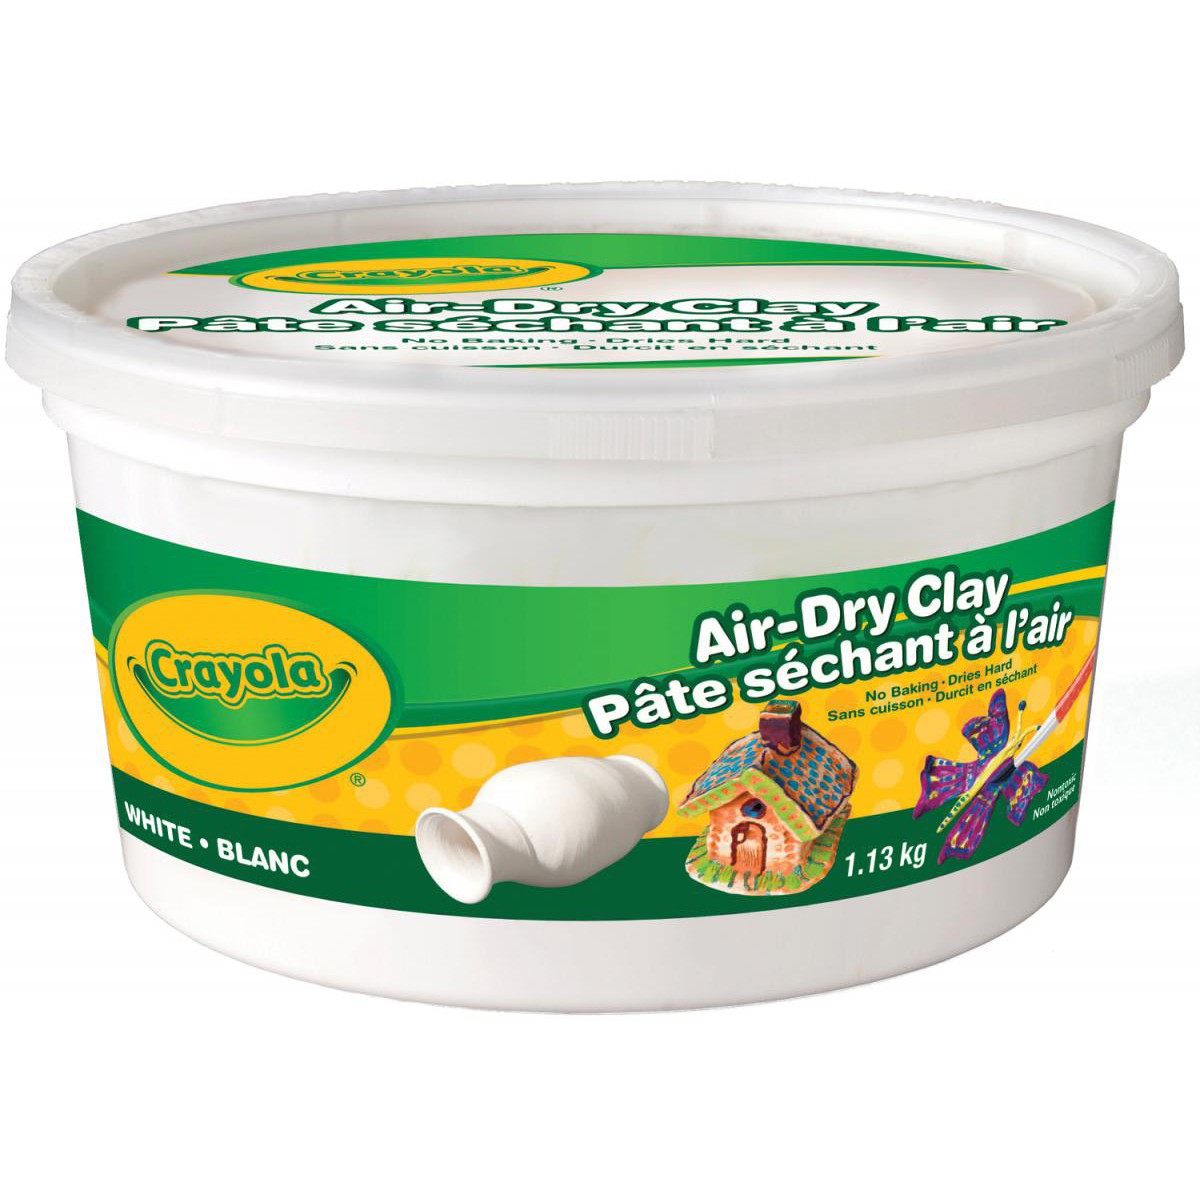 Crayola® Air-Dry Clay